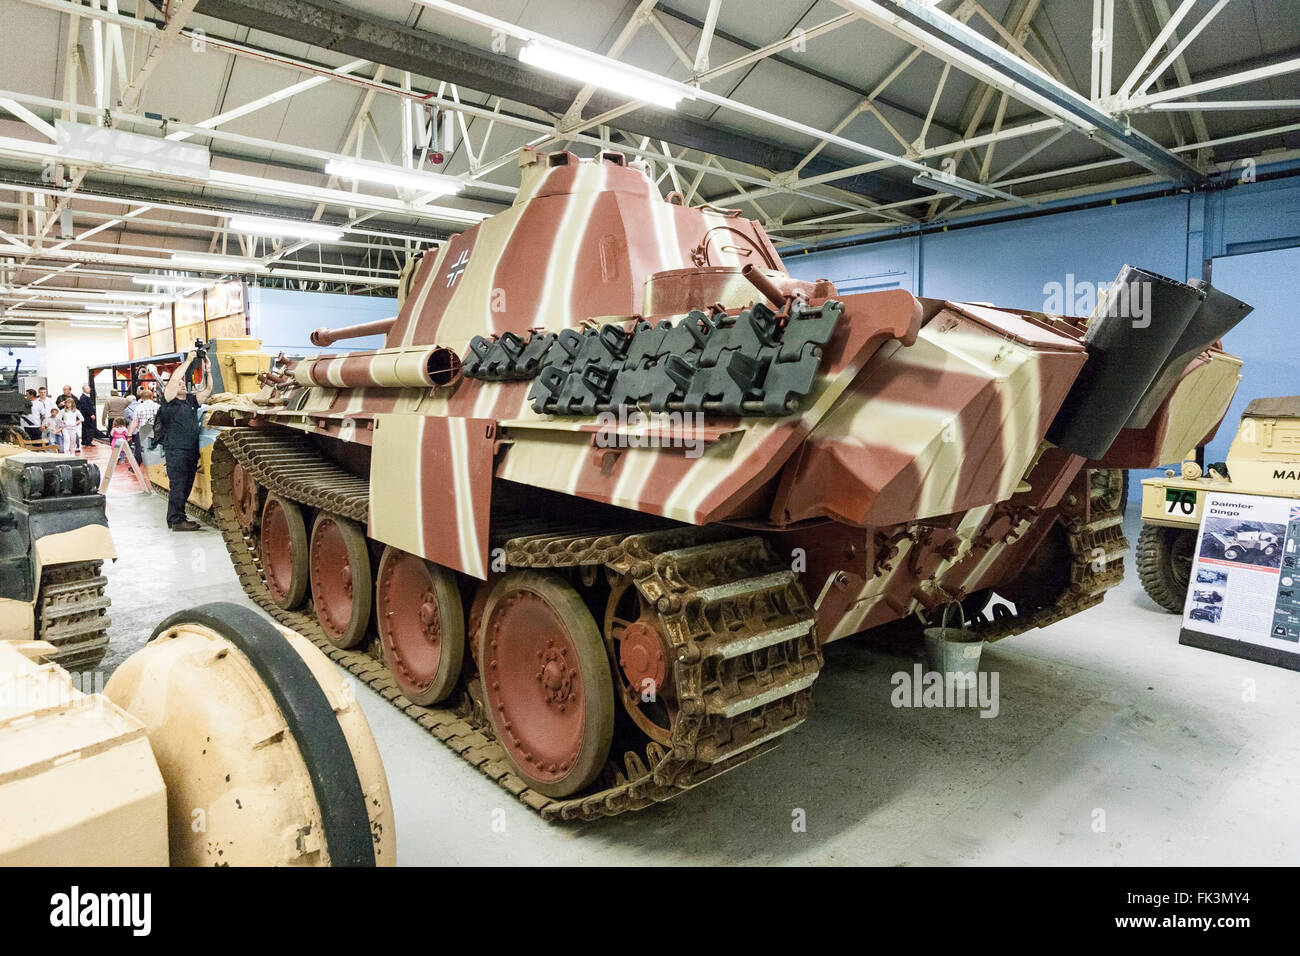 Bovington tank museum interior. Rear view showing exhausts of World war two German Panzer V, Panther tank, displayed - Stock Image